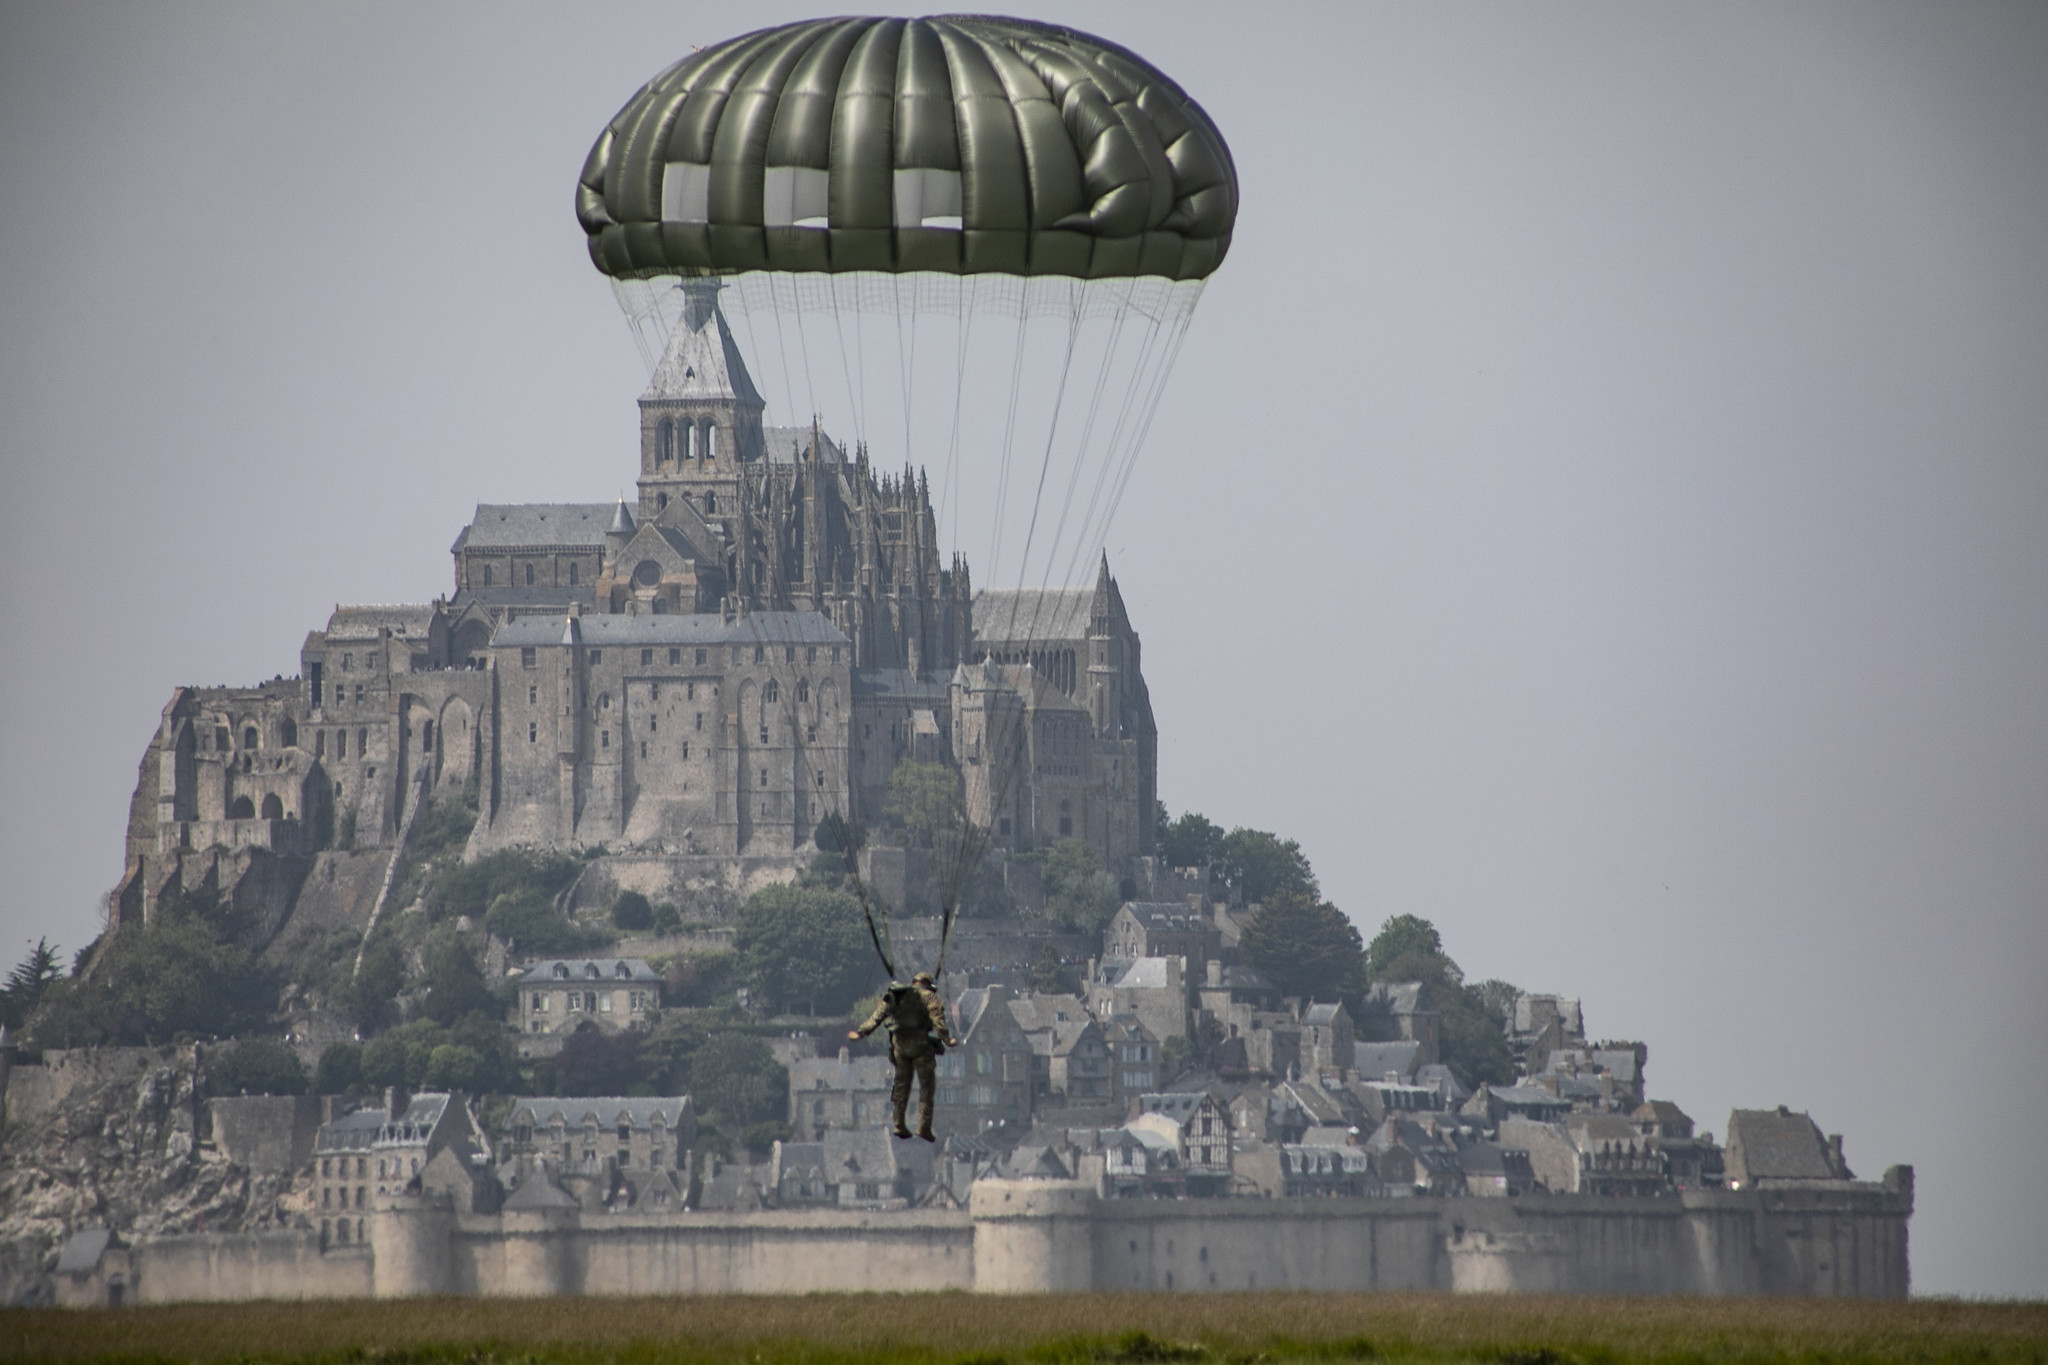 A paratrooper assigned to the U.S. Army's 10th Special Forces Group (Airborne) conducst an airborne operation near the island of Mont Saint Michel, Avranches, France, on May 18, 2019. This event comes at the invitation of the Mayor of Avranches in commemoration of World War ll special operations that laid the success for the Allied liberation of France, and a celebration of the strong Alliance between France and the United States. (Sgt. Alexis K. Washburn/Army)